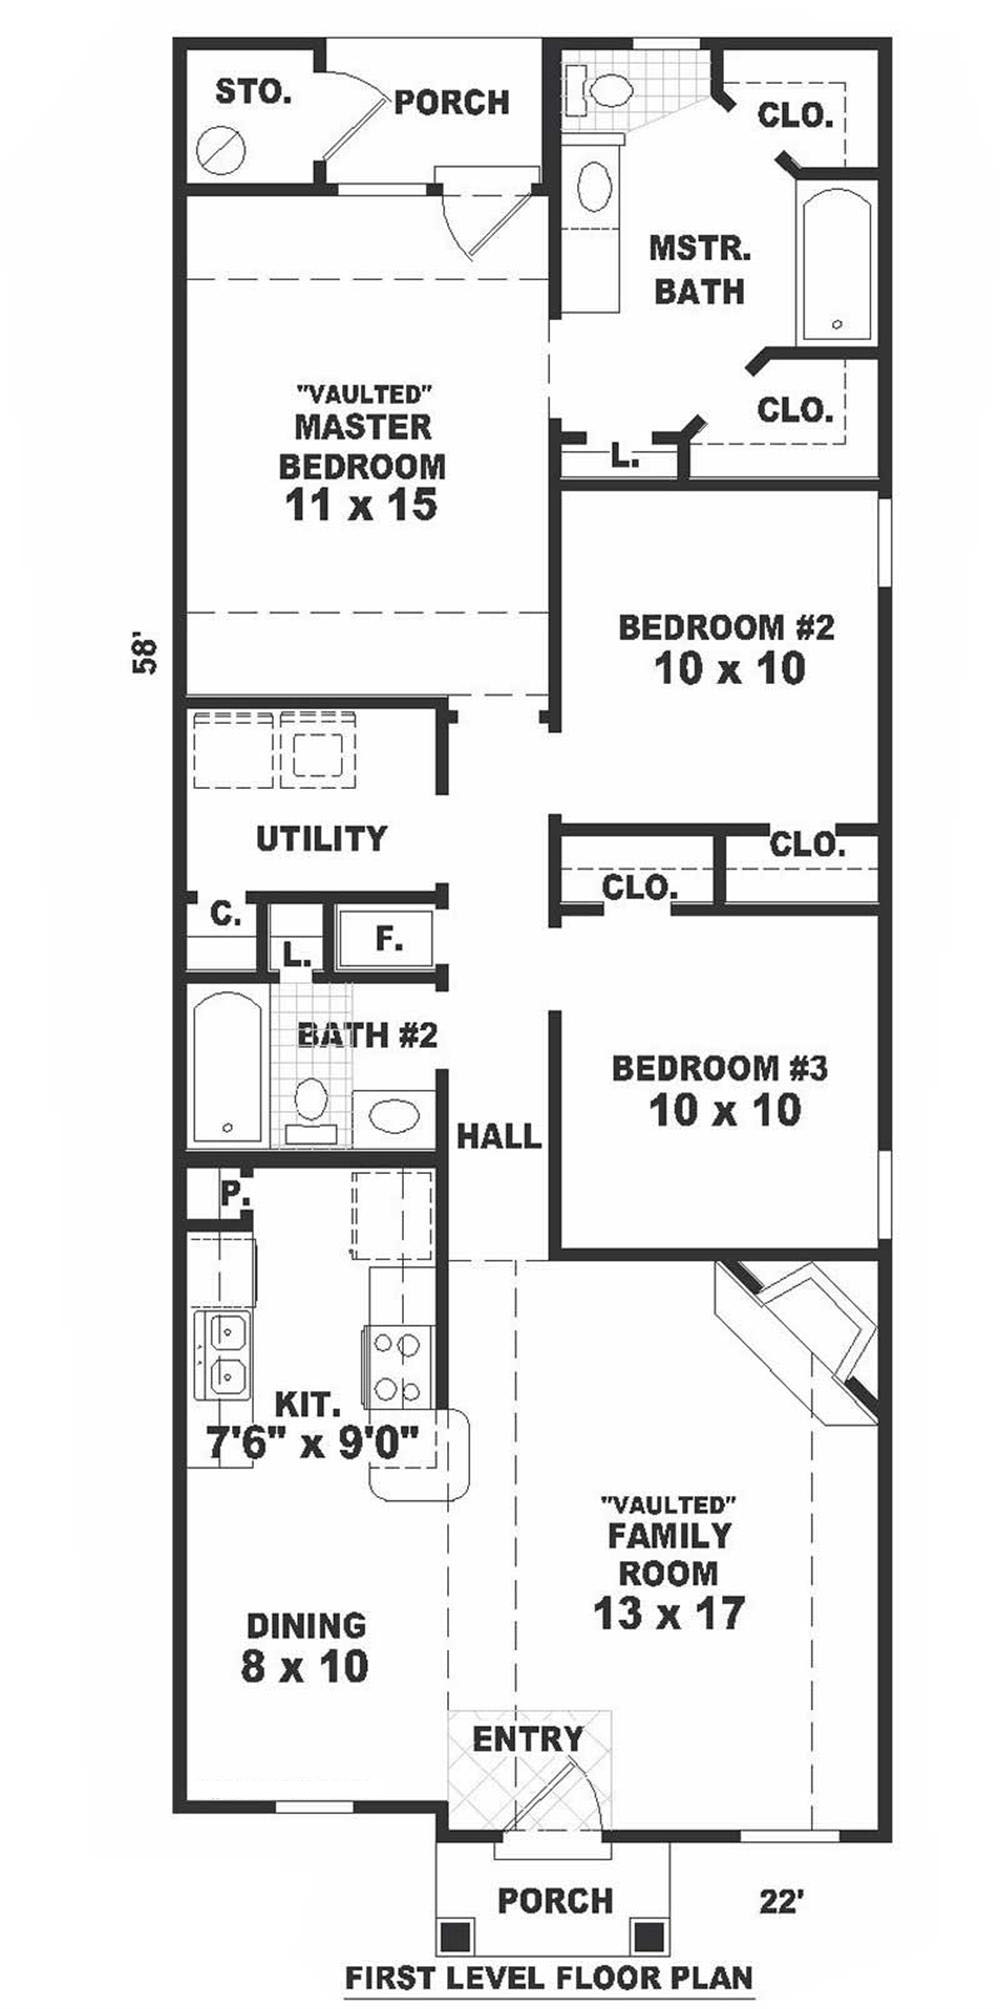 Small bungalow house plans home design b1120 77 f 7596 for Small house plans with master bedroom on first floor